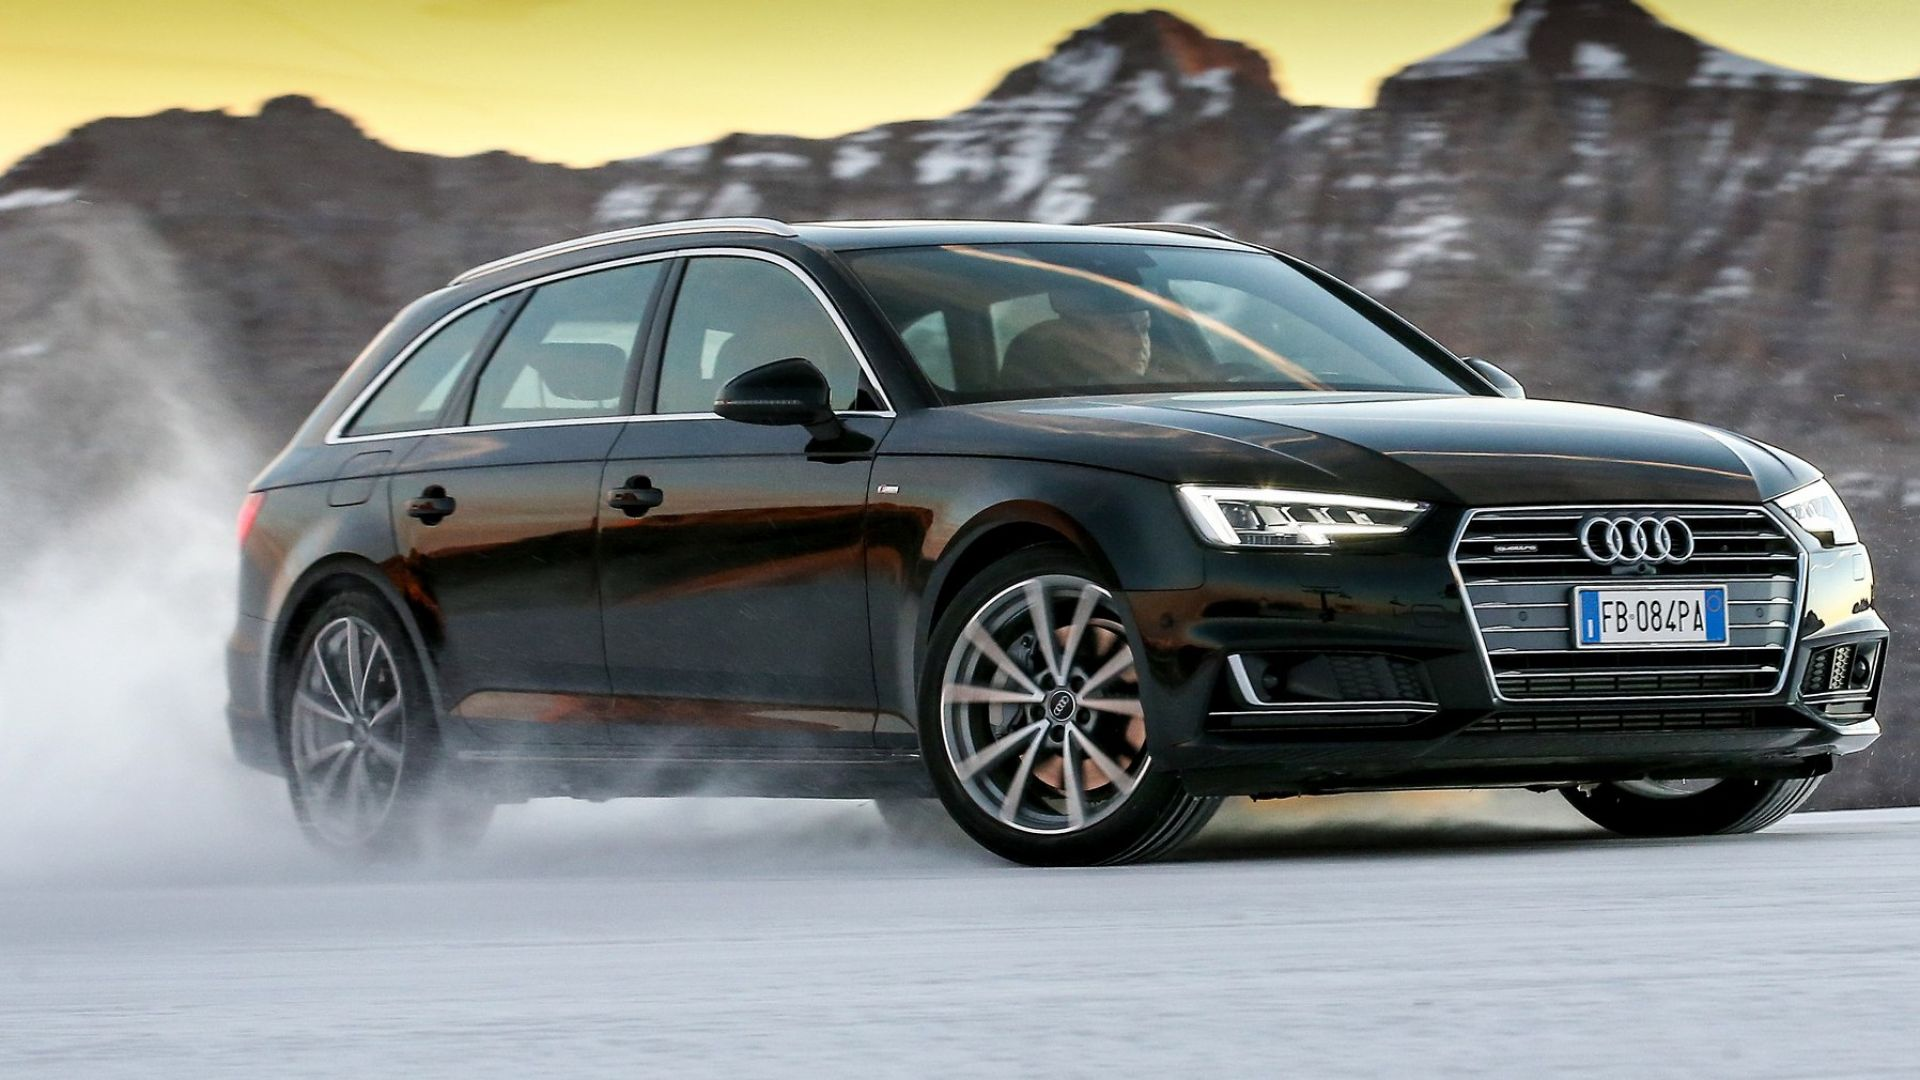 Ebay audi a4 avant tdi s line reviews s tronic business 15